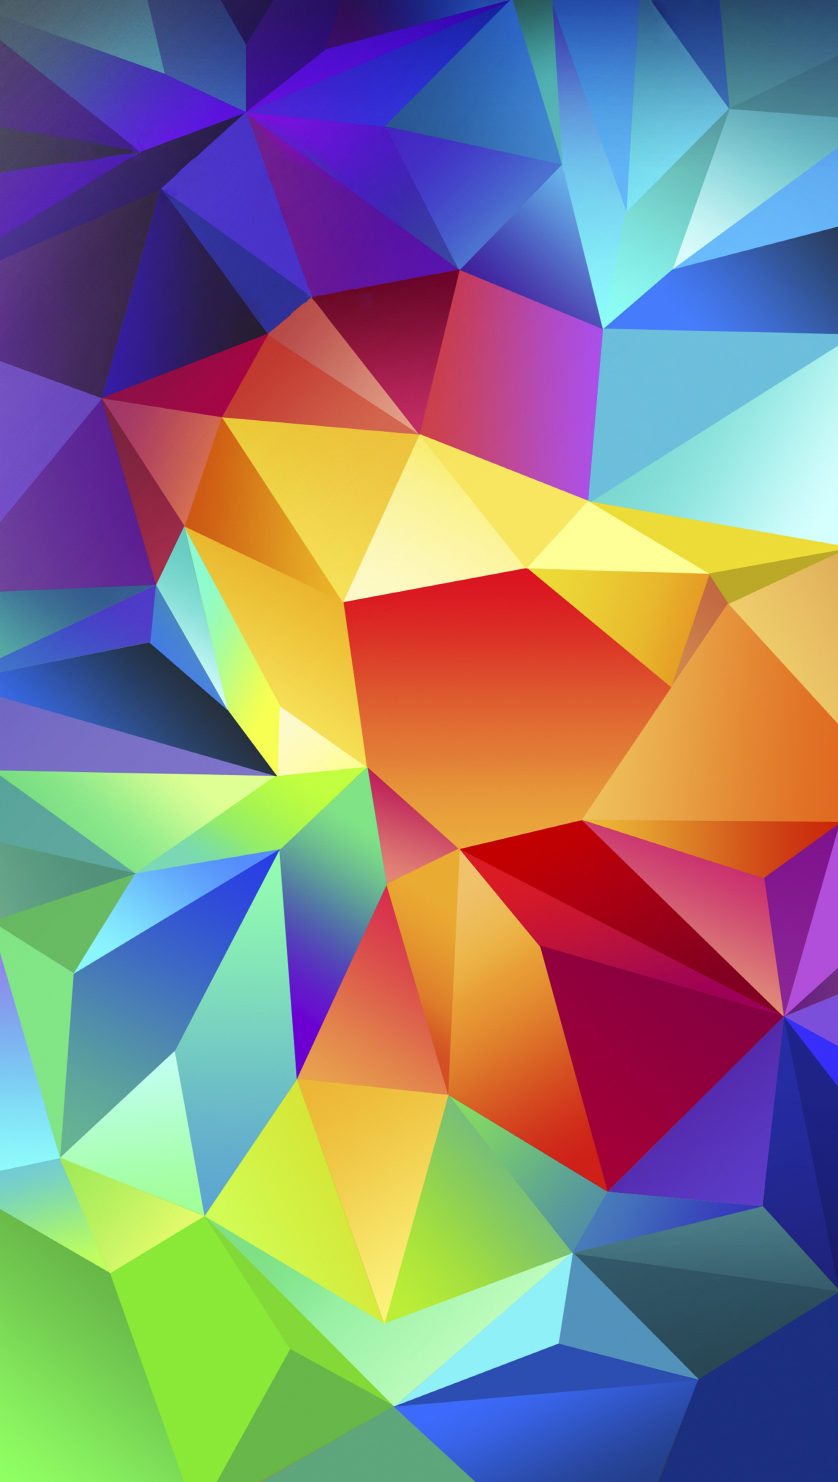 Get Confused with Android Kit Kat   Galaxy S5 Wallpapers for the iPhone Galaxy S5 multi colored shapes of whoknowswhat